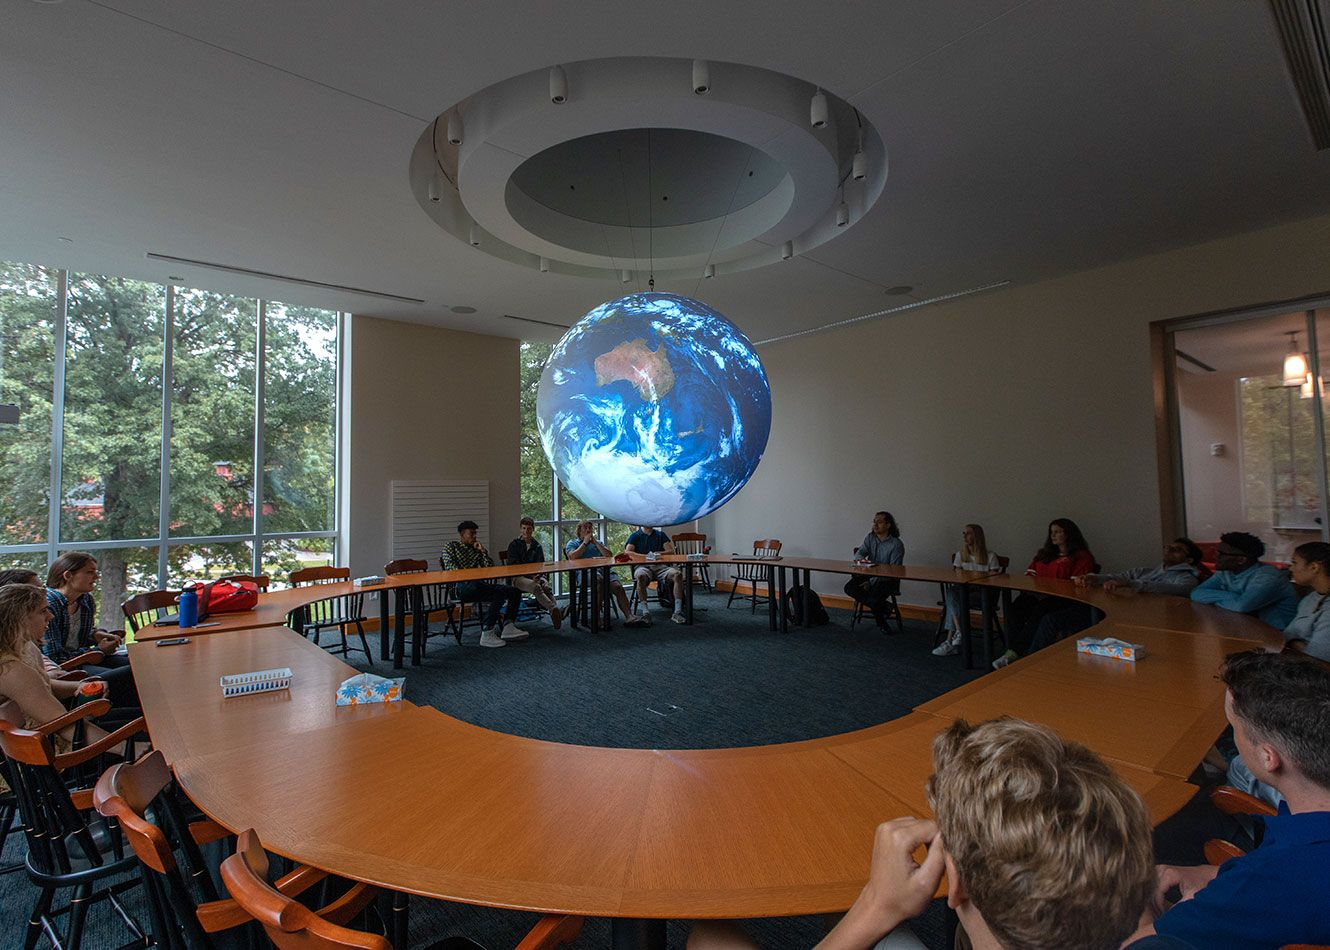 Our National Oceanographic and Atmospheric Administration (NOAA) Science on a Sphere classroom is one of 130 such systems in the world and the only one dedicated to high school students.